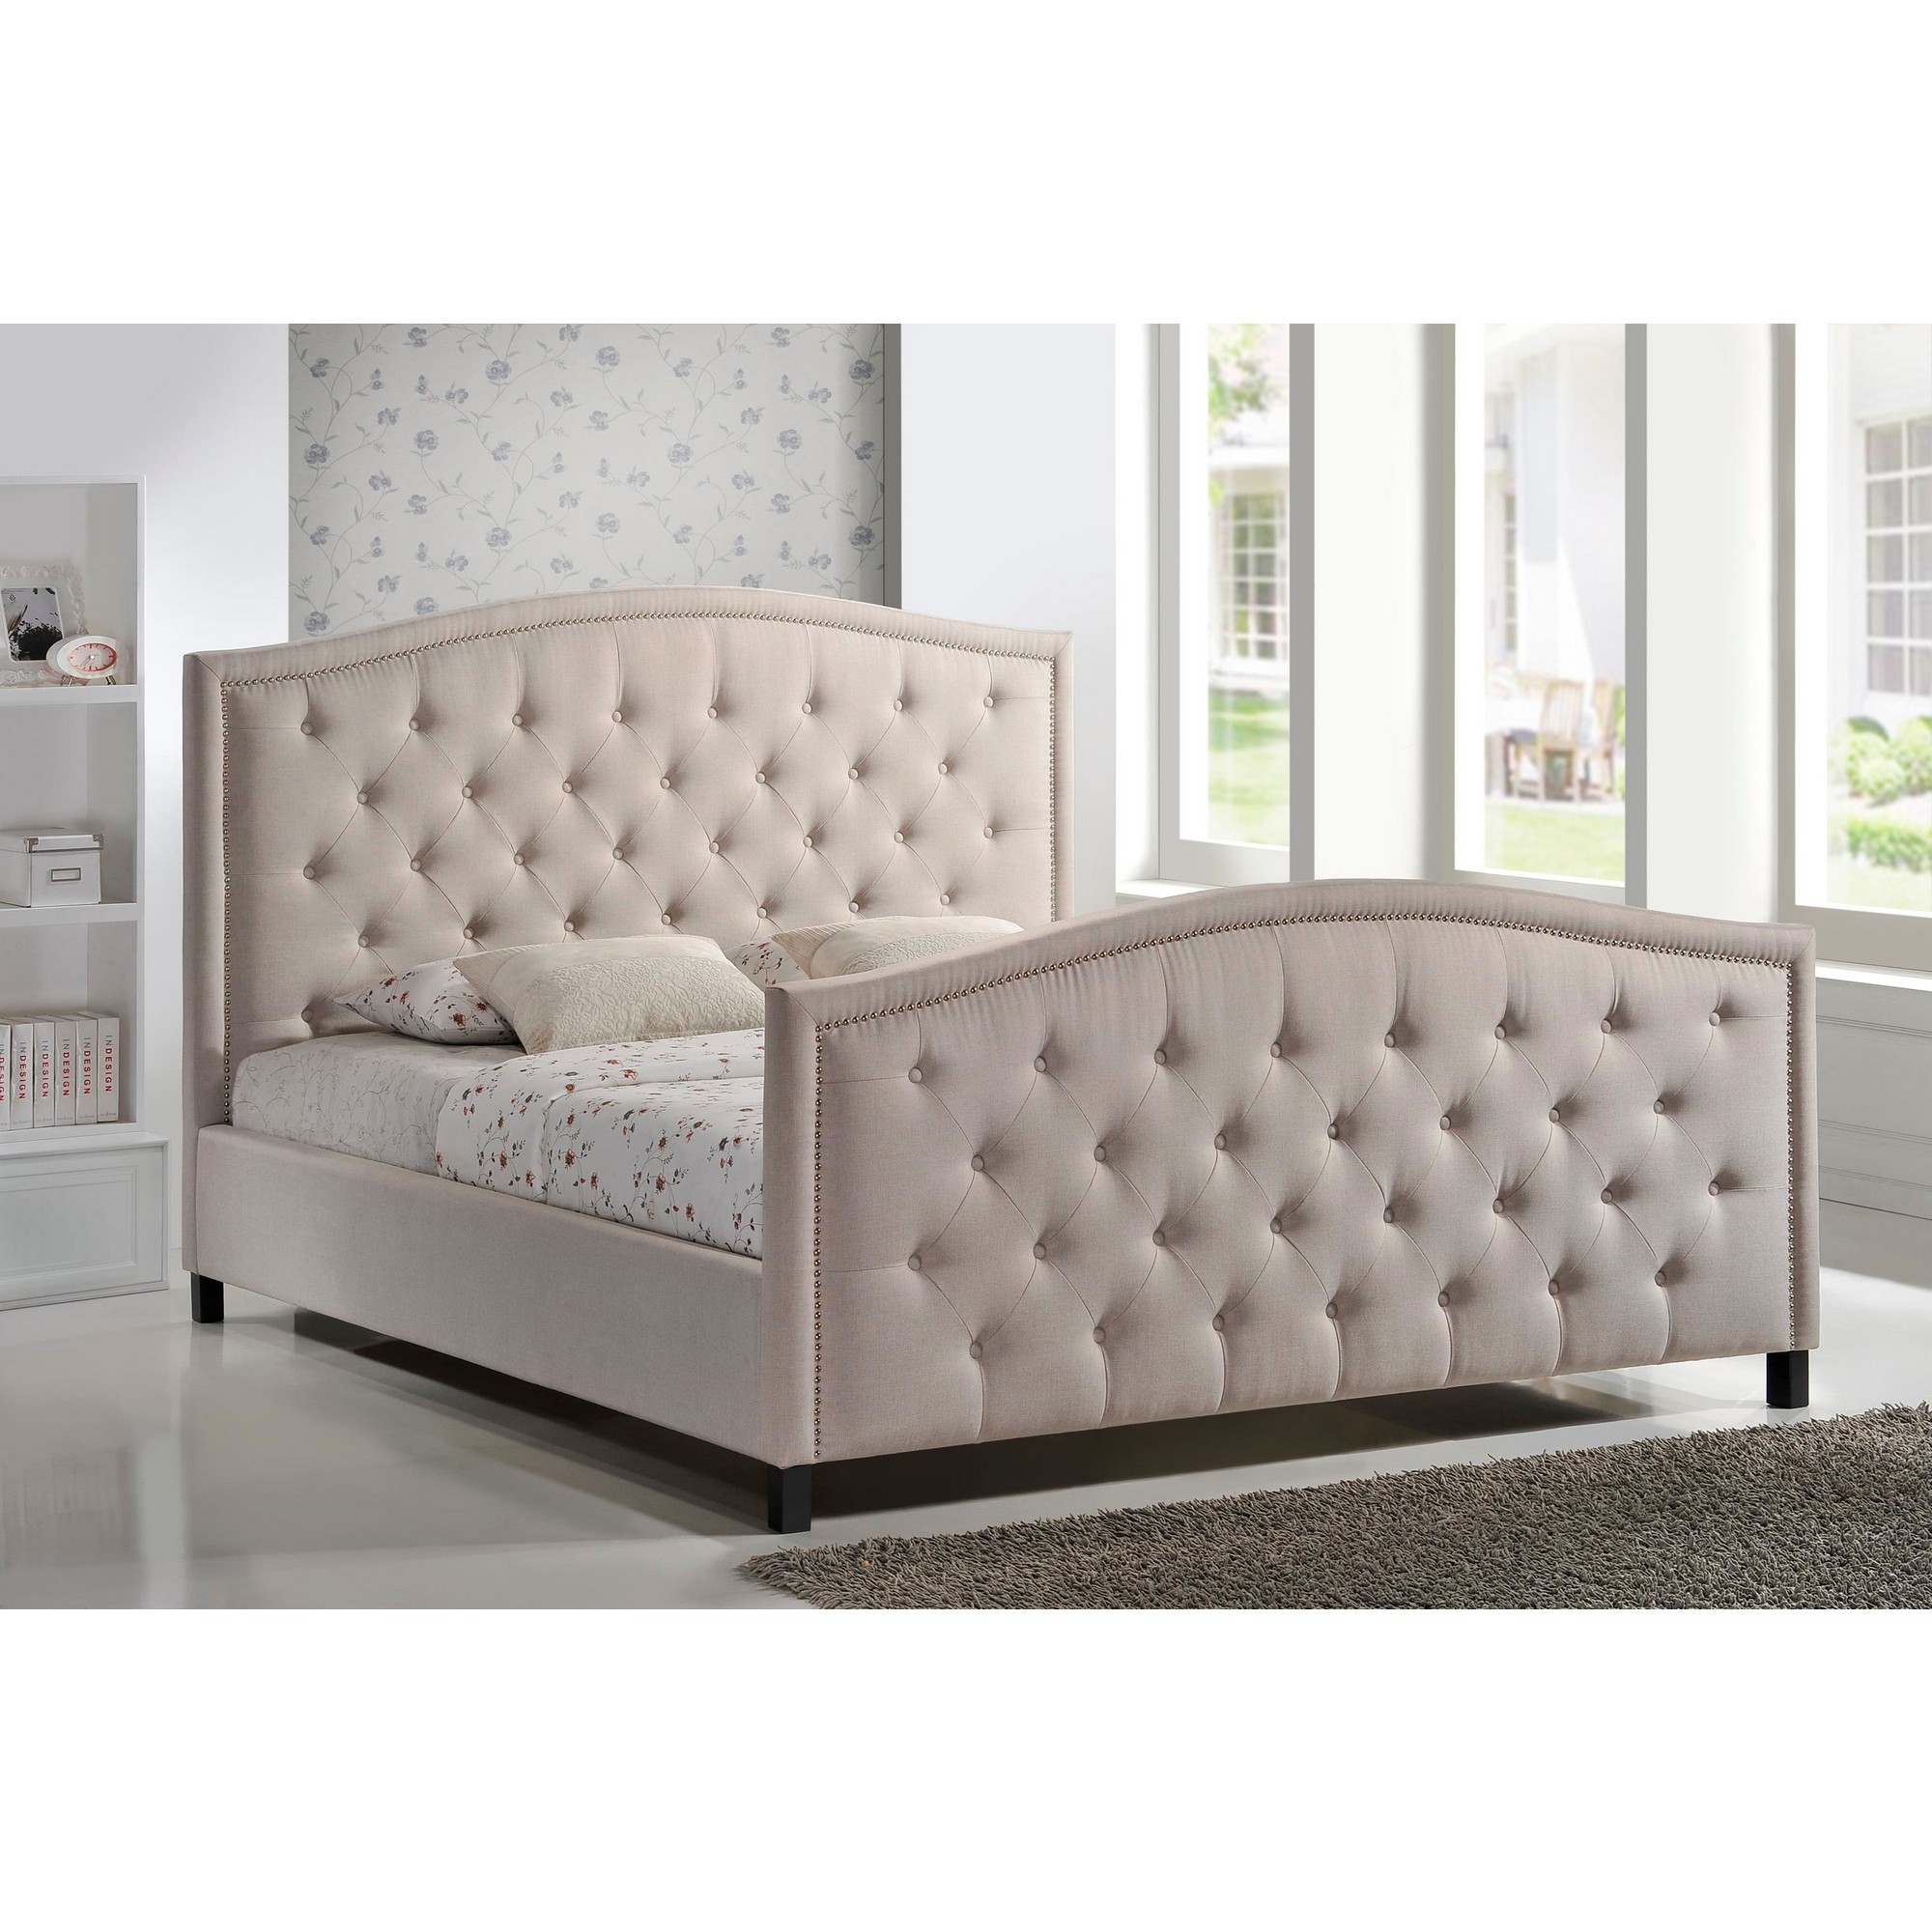 luxeo home furnishings camden king diamond tufted upholstered bed in palazzo mist fabric